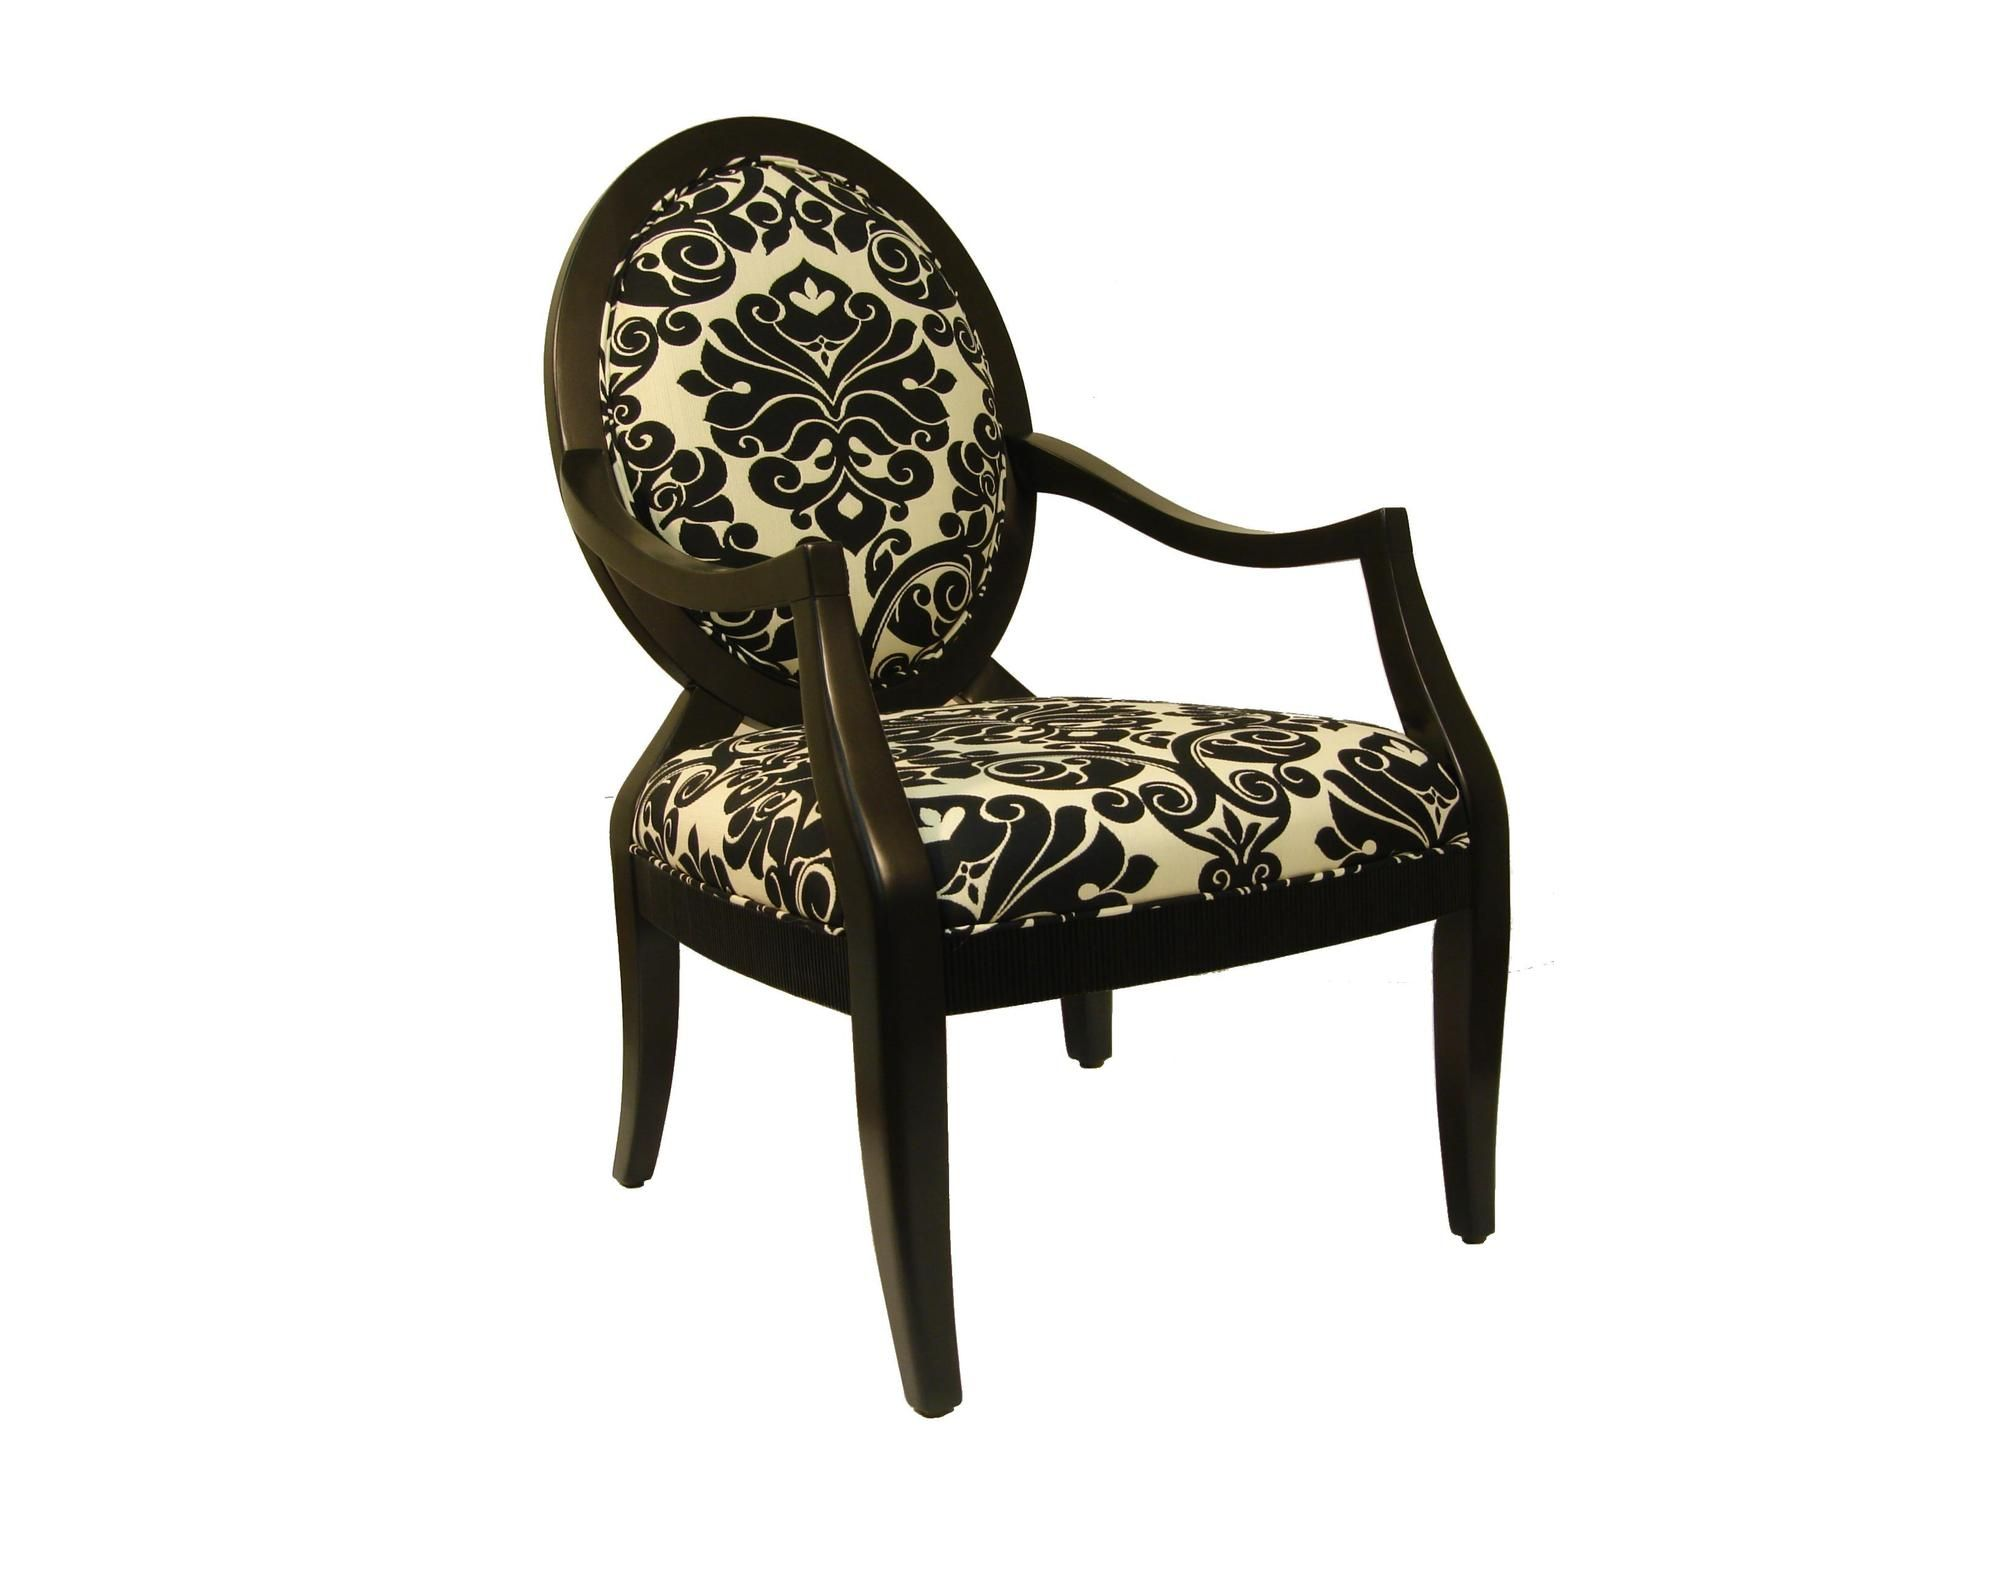 Royal Manufacturing Black Frame Chair with Cream Background and Large Black Baroque Pattern Chair $269.00